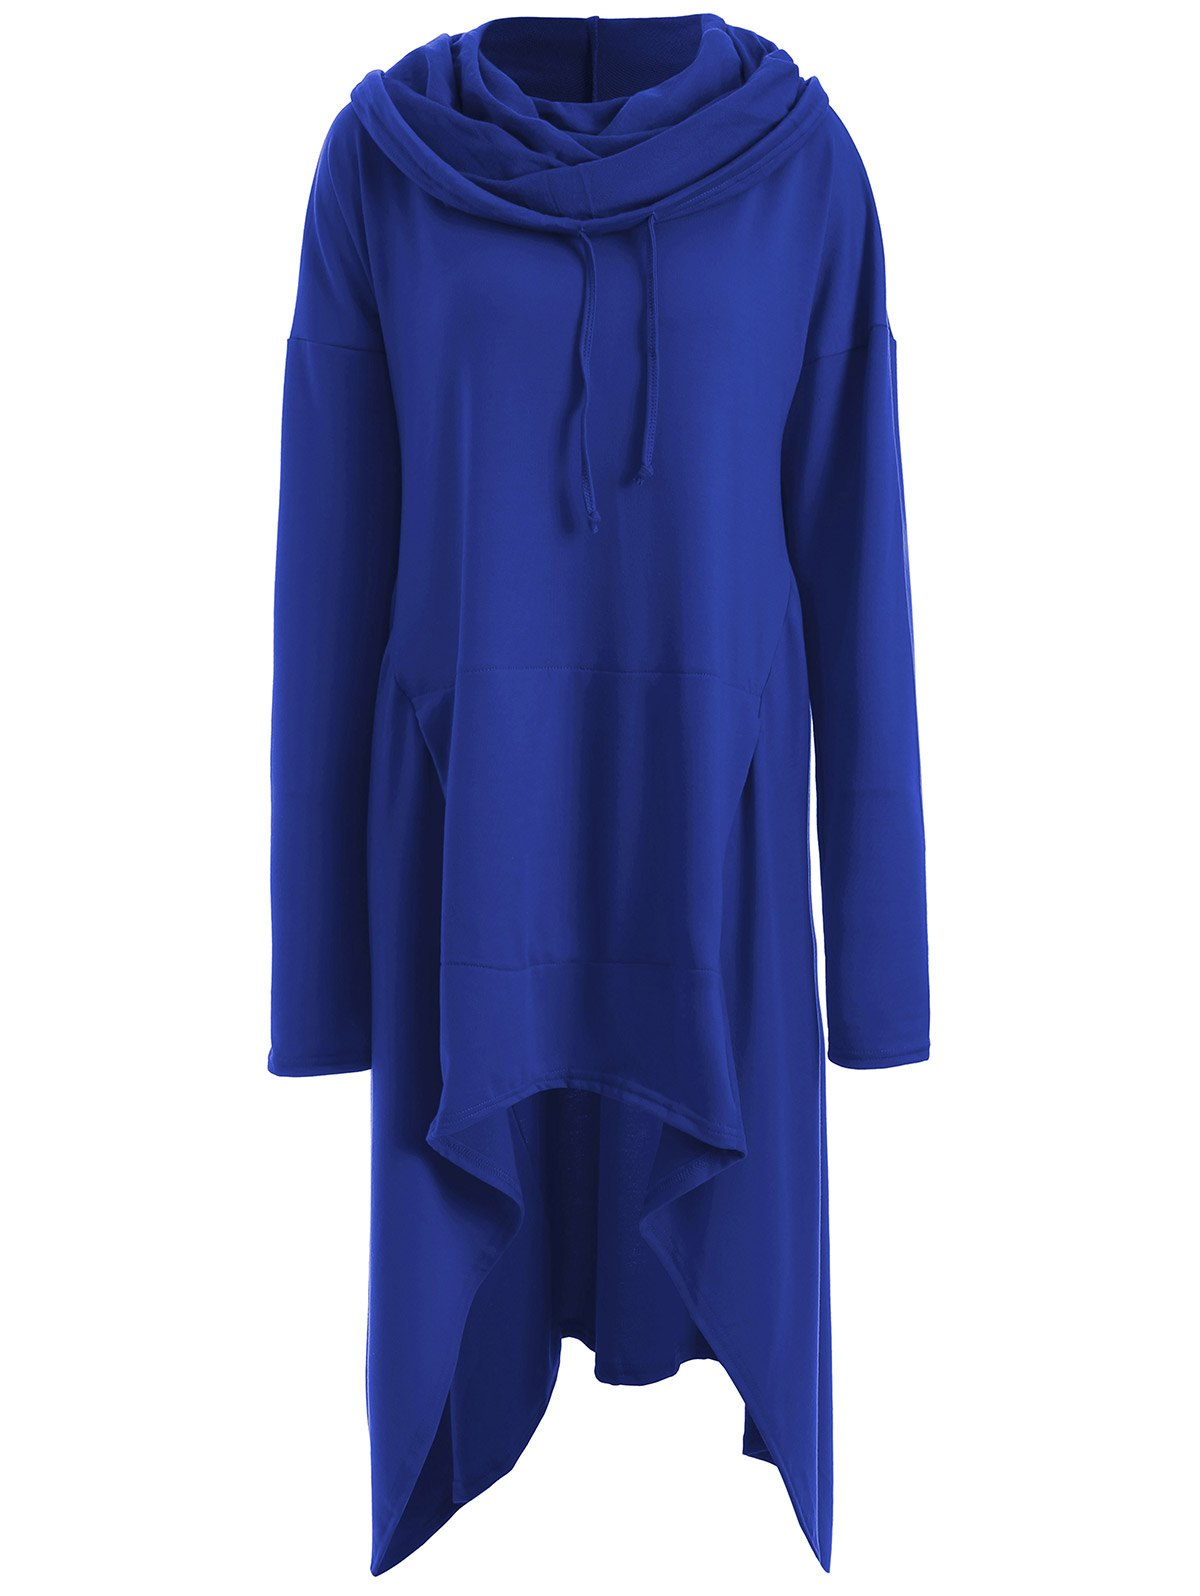 Asymmetrical Pocket Design Loose-Fitting Neck Hoodie - BLUE M